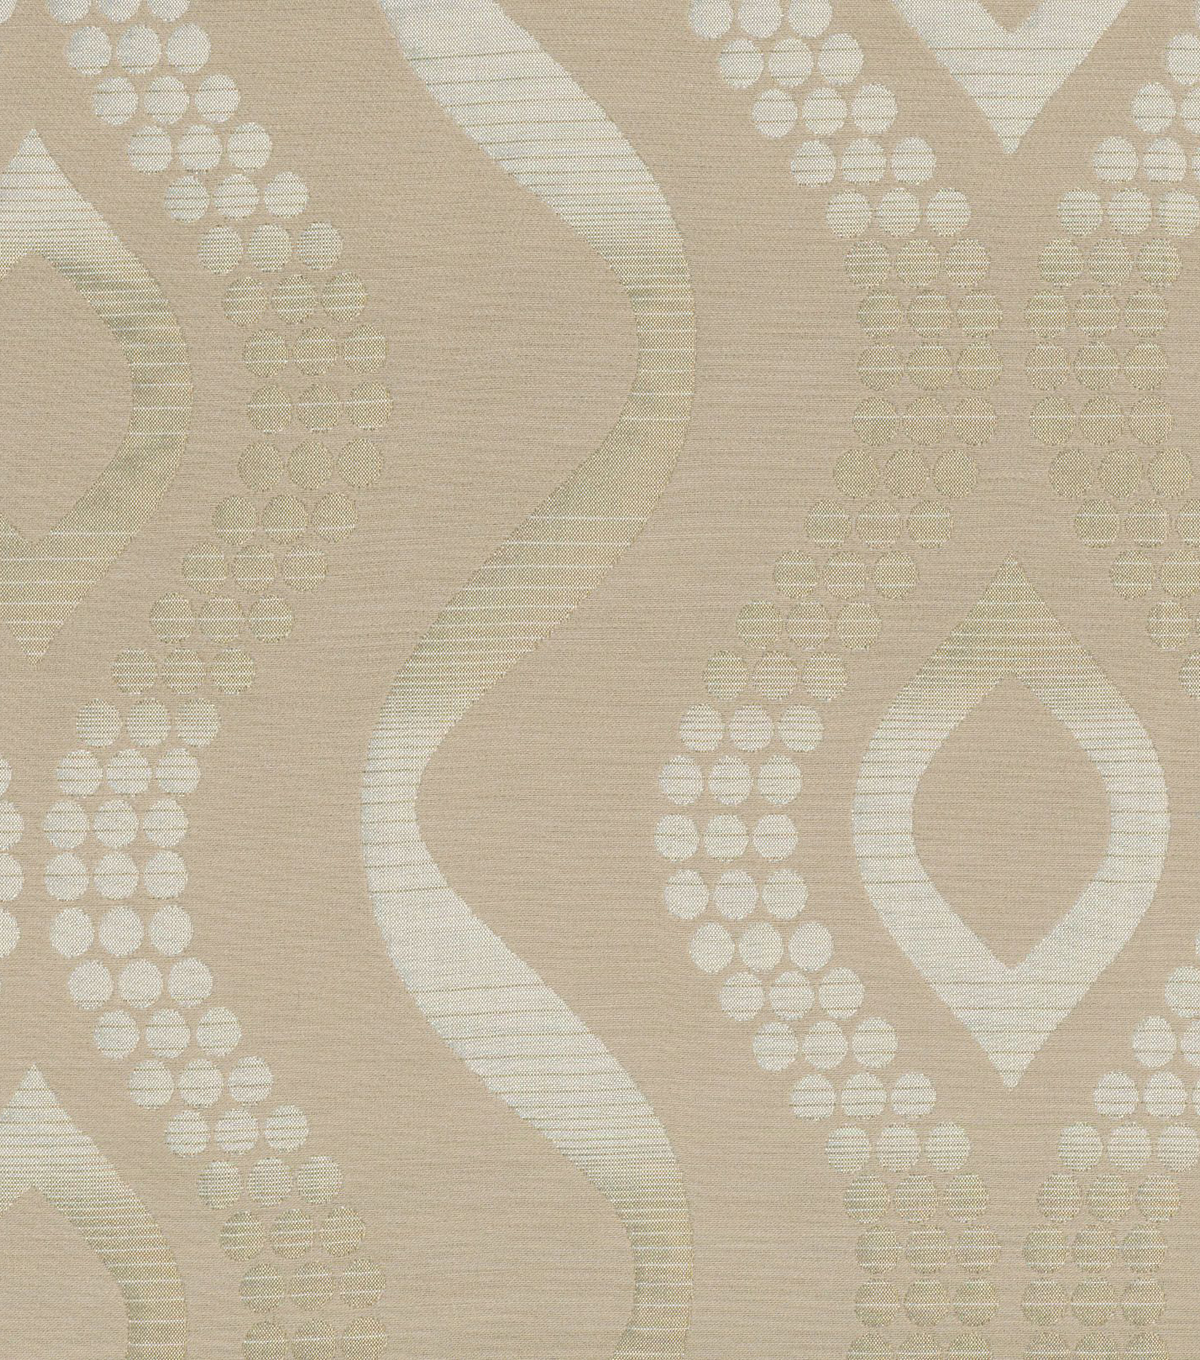 "Home Decor 8""x8"" Fabric Swatch-Elite Caprizzio Cream"